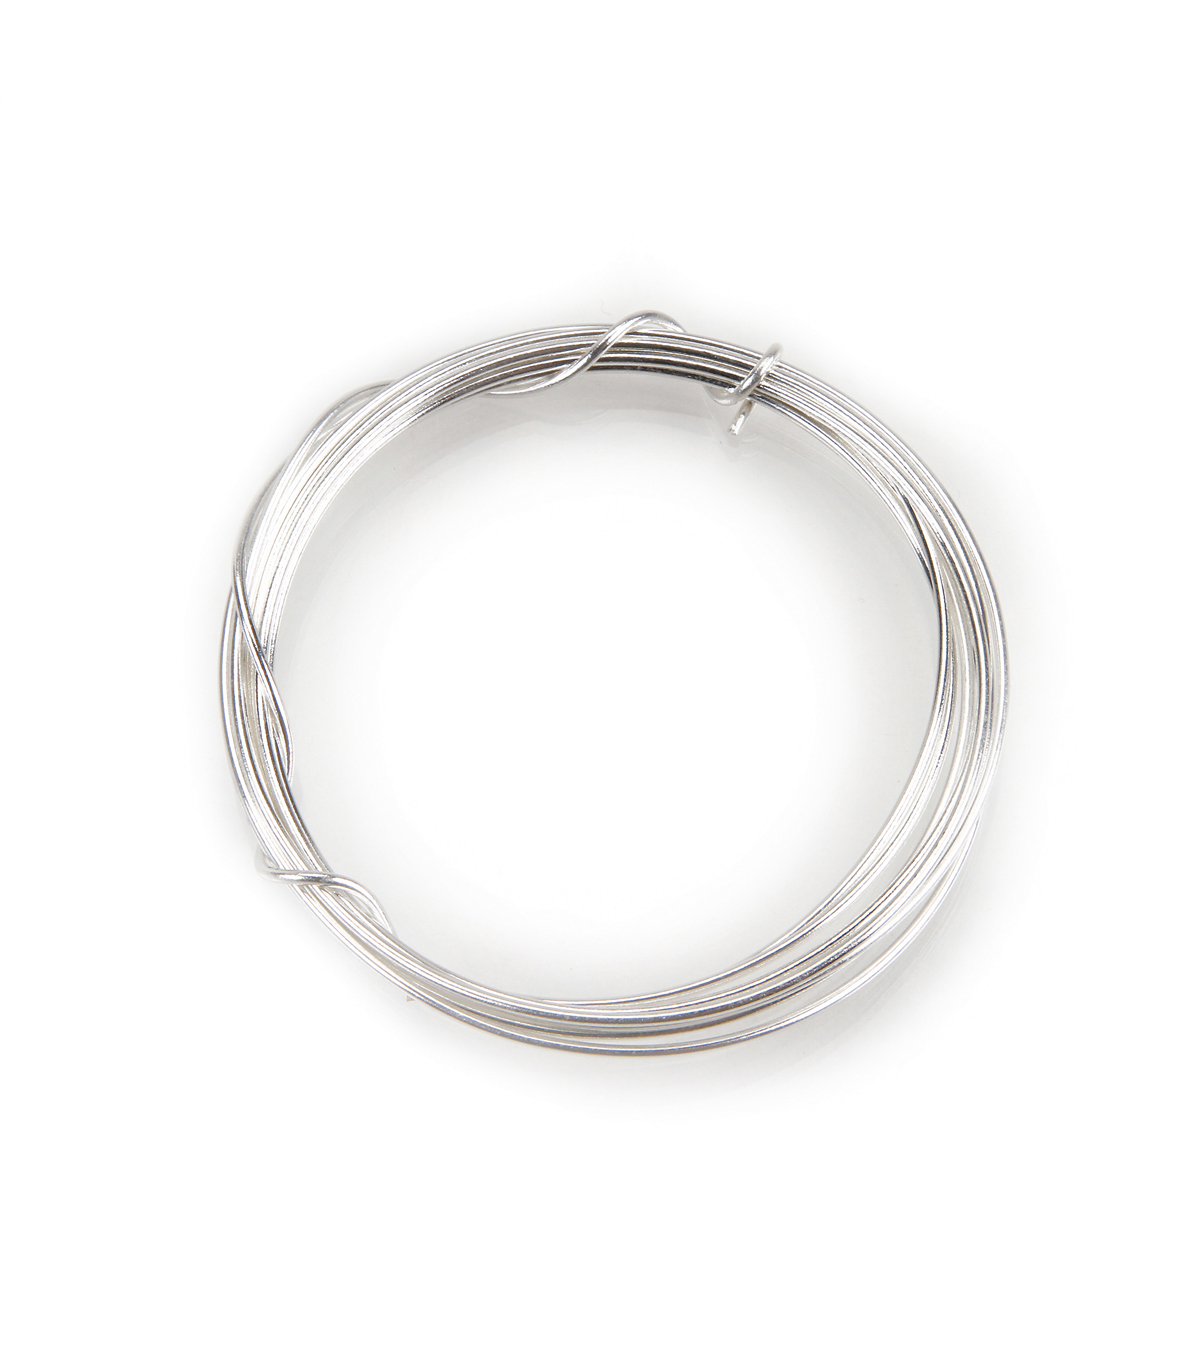 Sterling Silver Plated Jewelry Wire, 20 Gauge, 7 grams